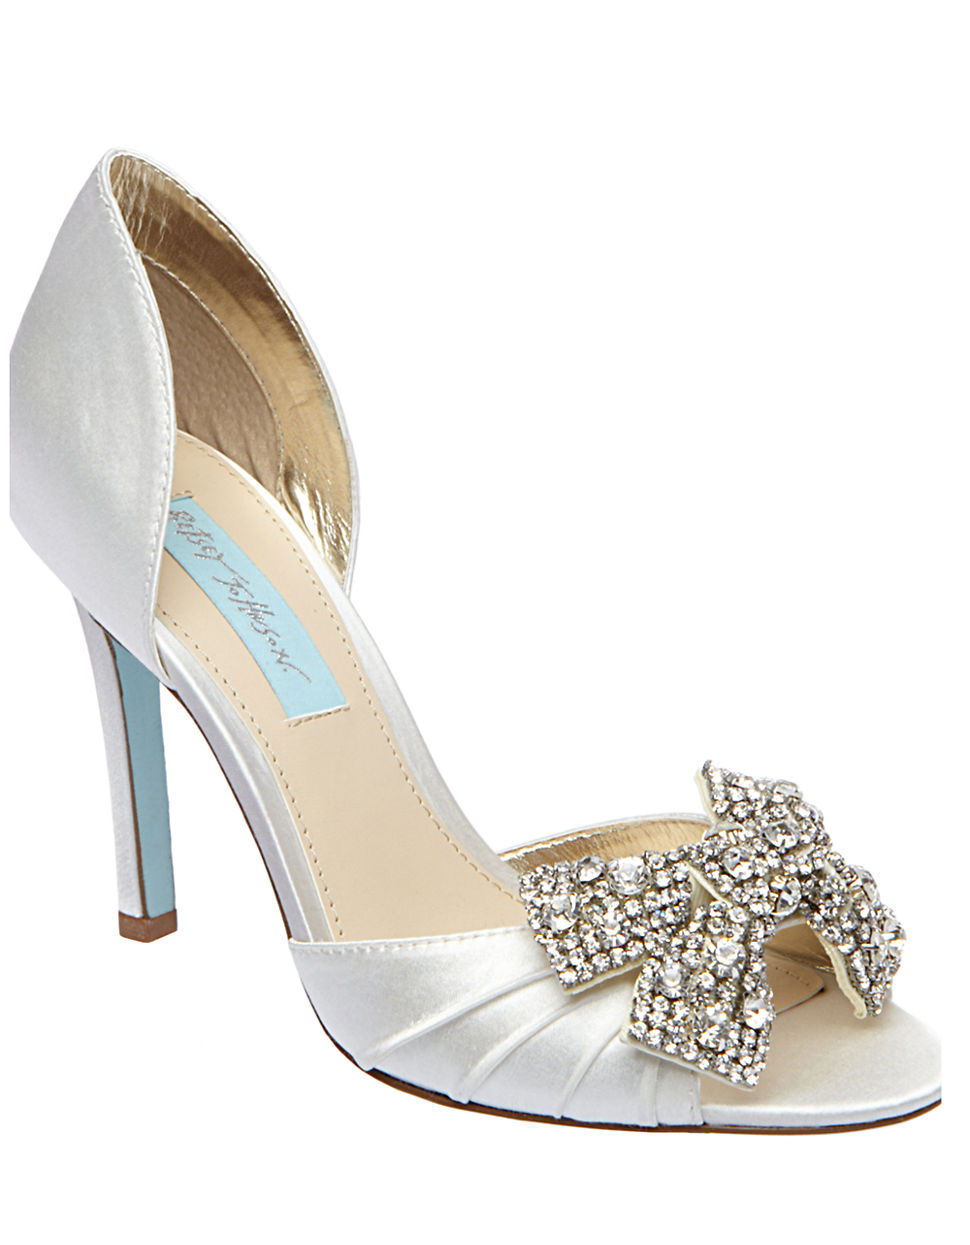 Lyst Betsey Johnson Gown Satin Pumps In Metallic